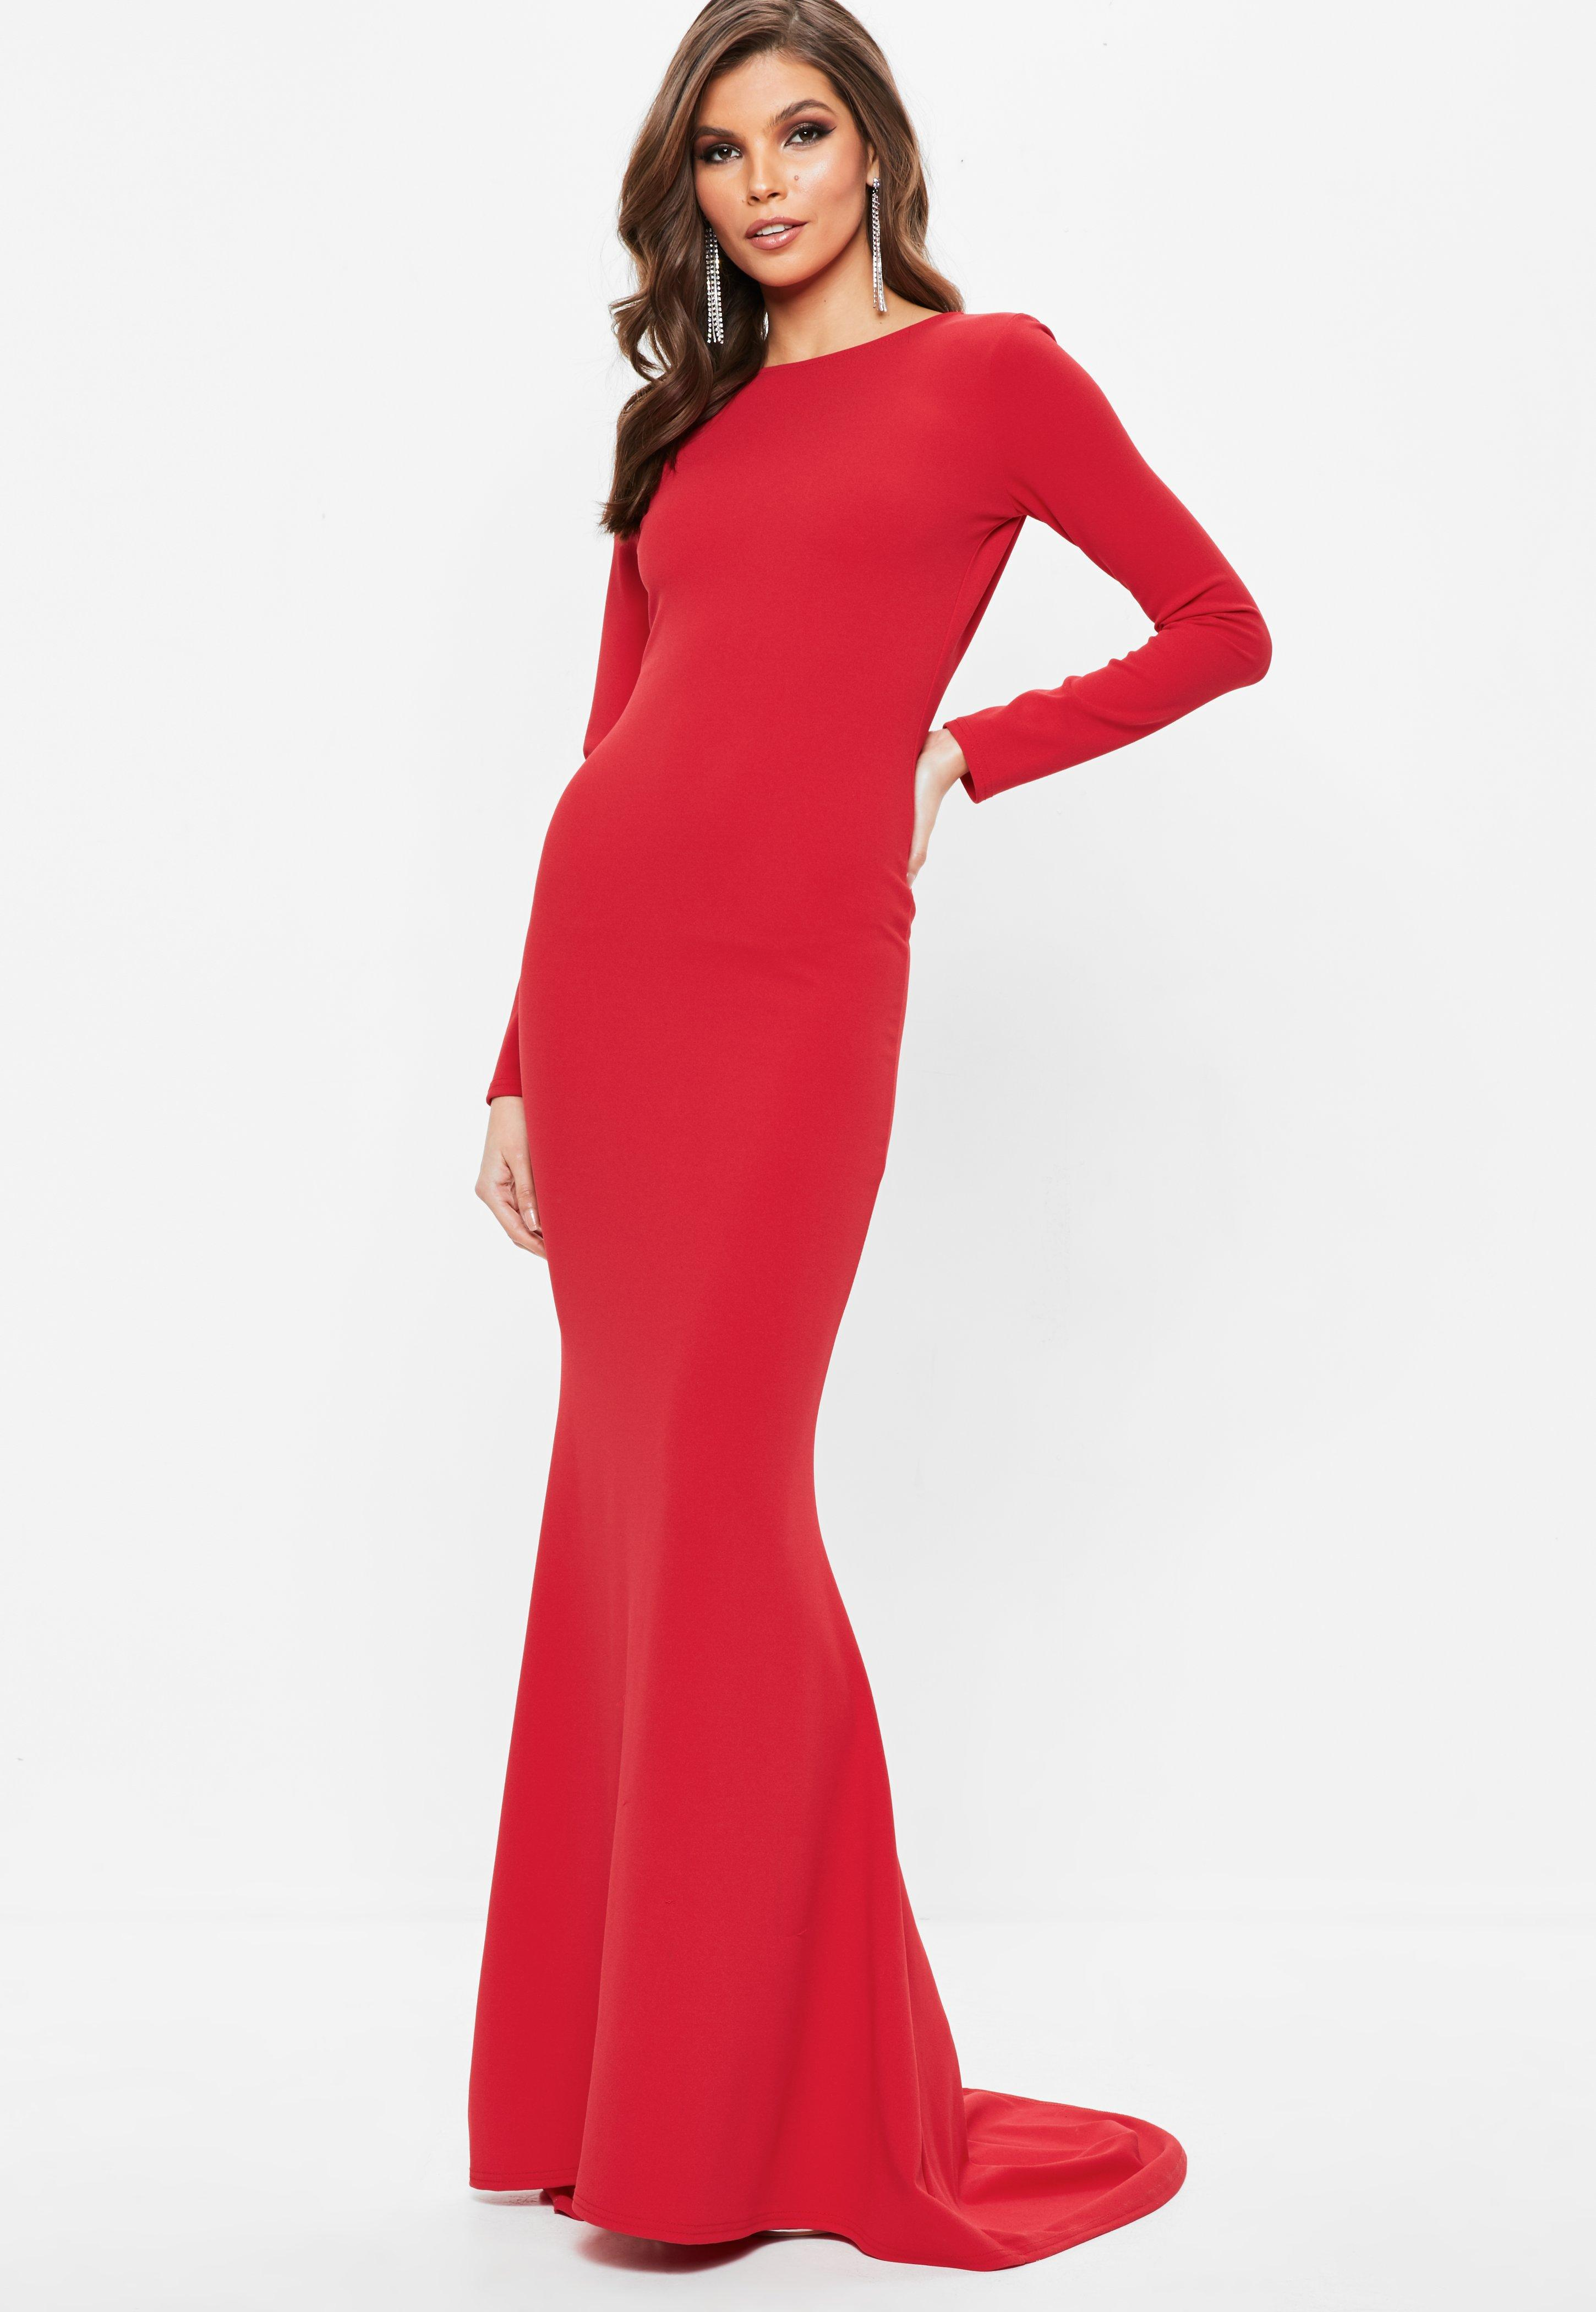 85e7d197e5ea Lyst - Missguided Red Long Sleeve Open Back Fishtail Maxi Dress in Red